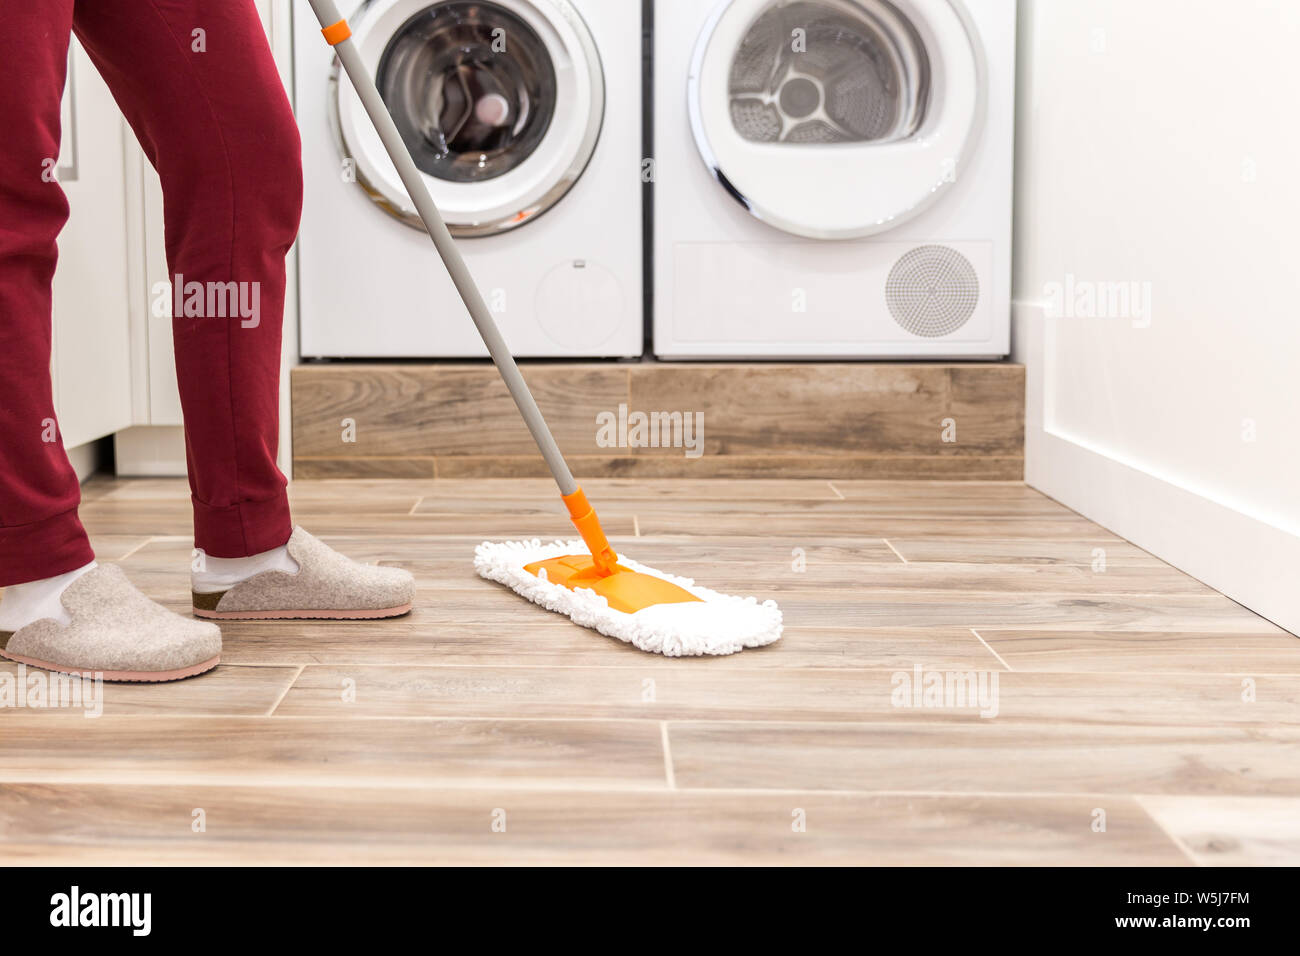 Cleaning Floor In Laundry Room In Modern House Stock Photo